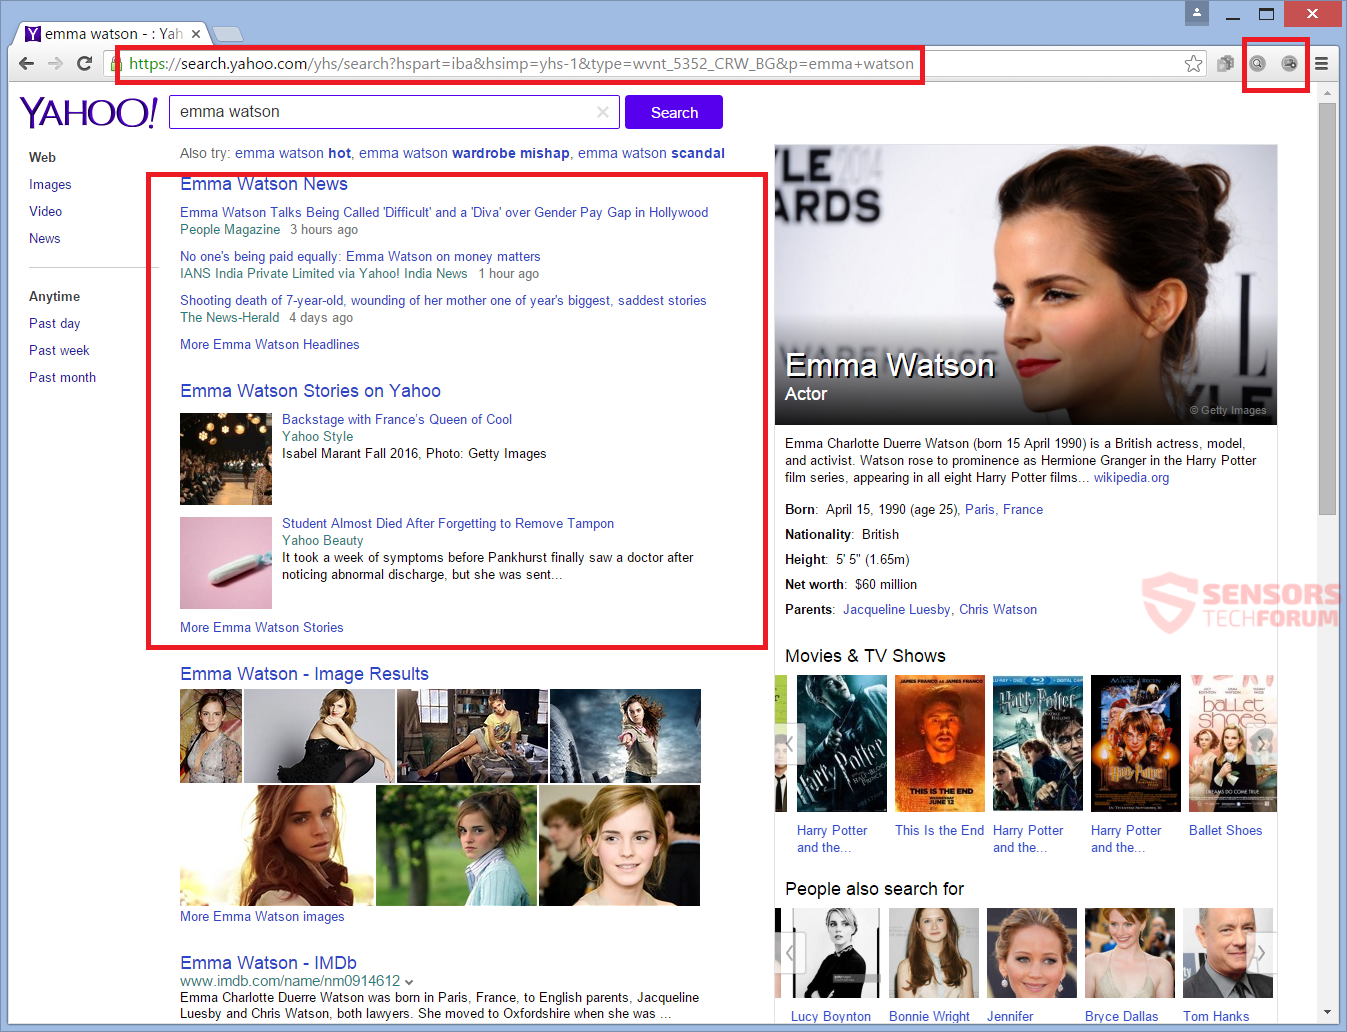 STF-wowmovix-gomovix-com-wow-movix-searchalgo-com-search-algo-emma-watson-search-results